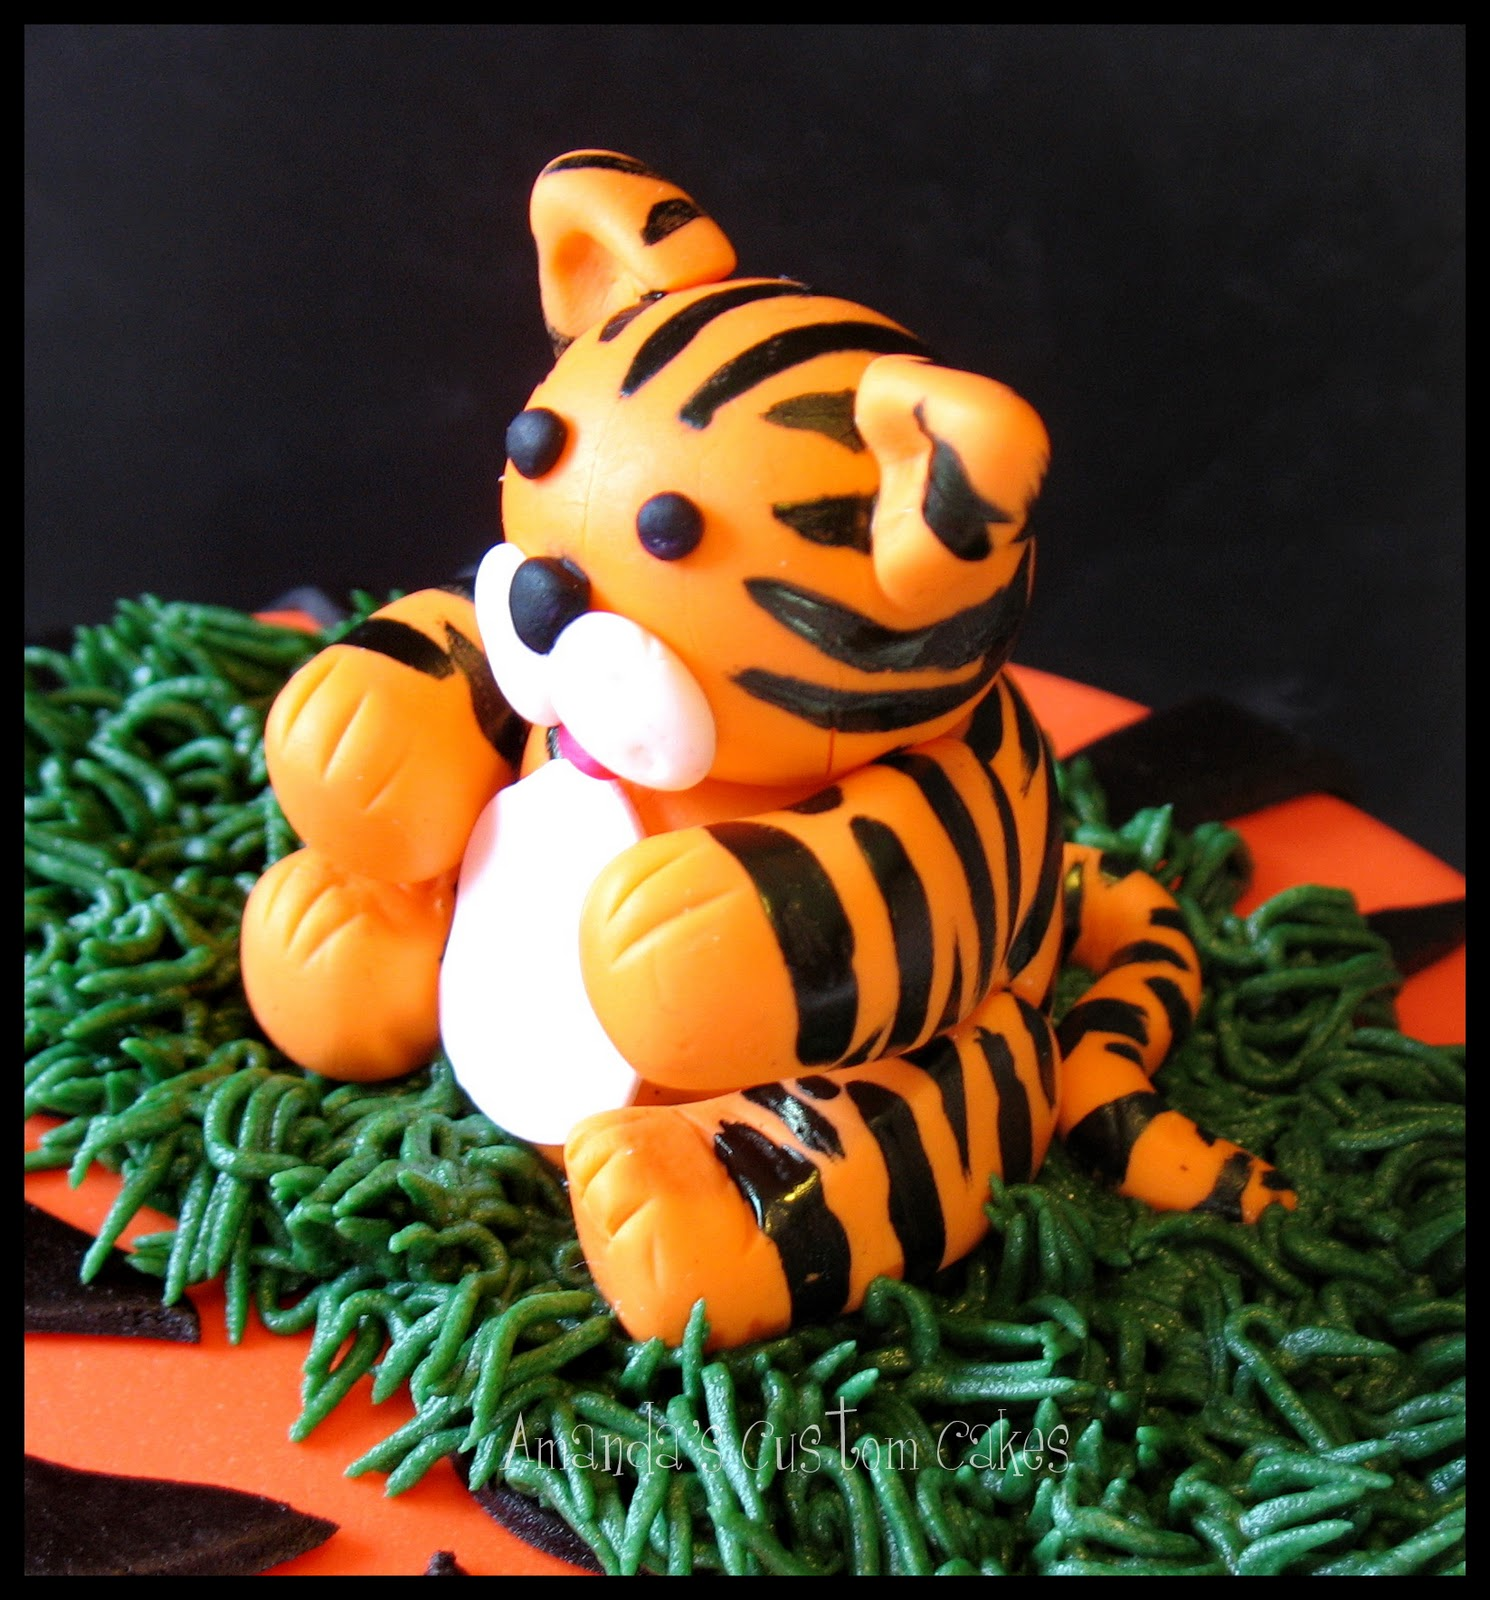 Amanda S Custom Cakes Tiger Themed Cookies And Cake